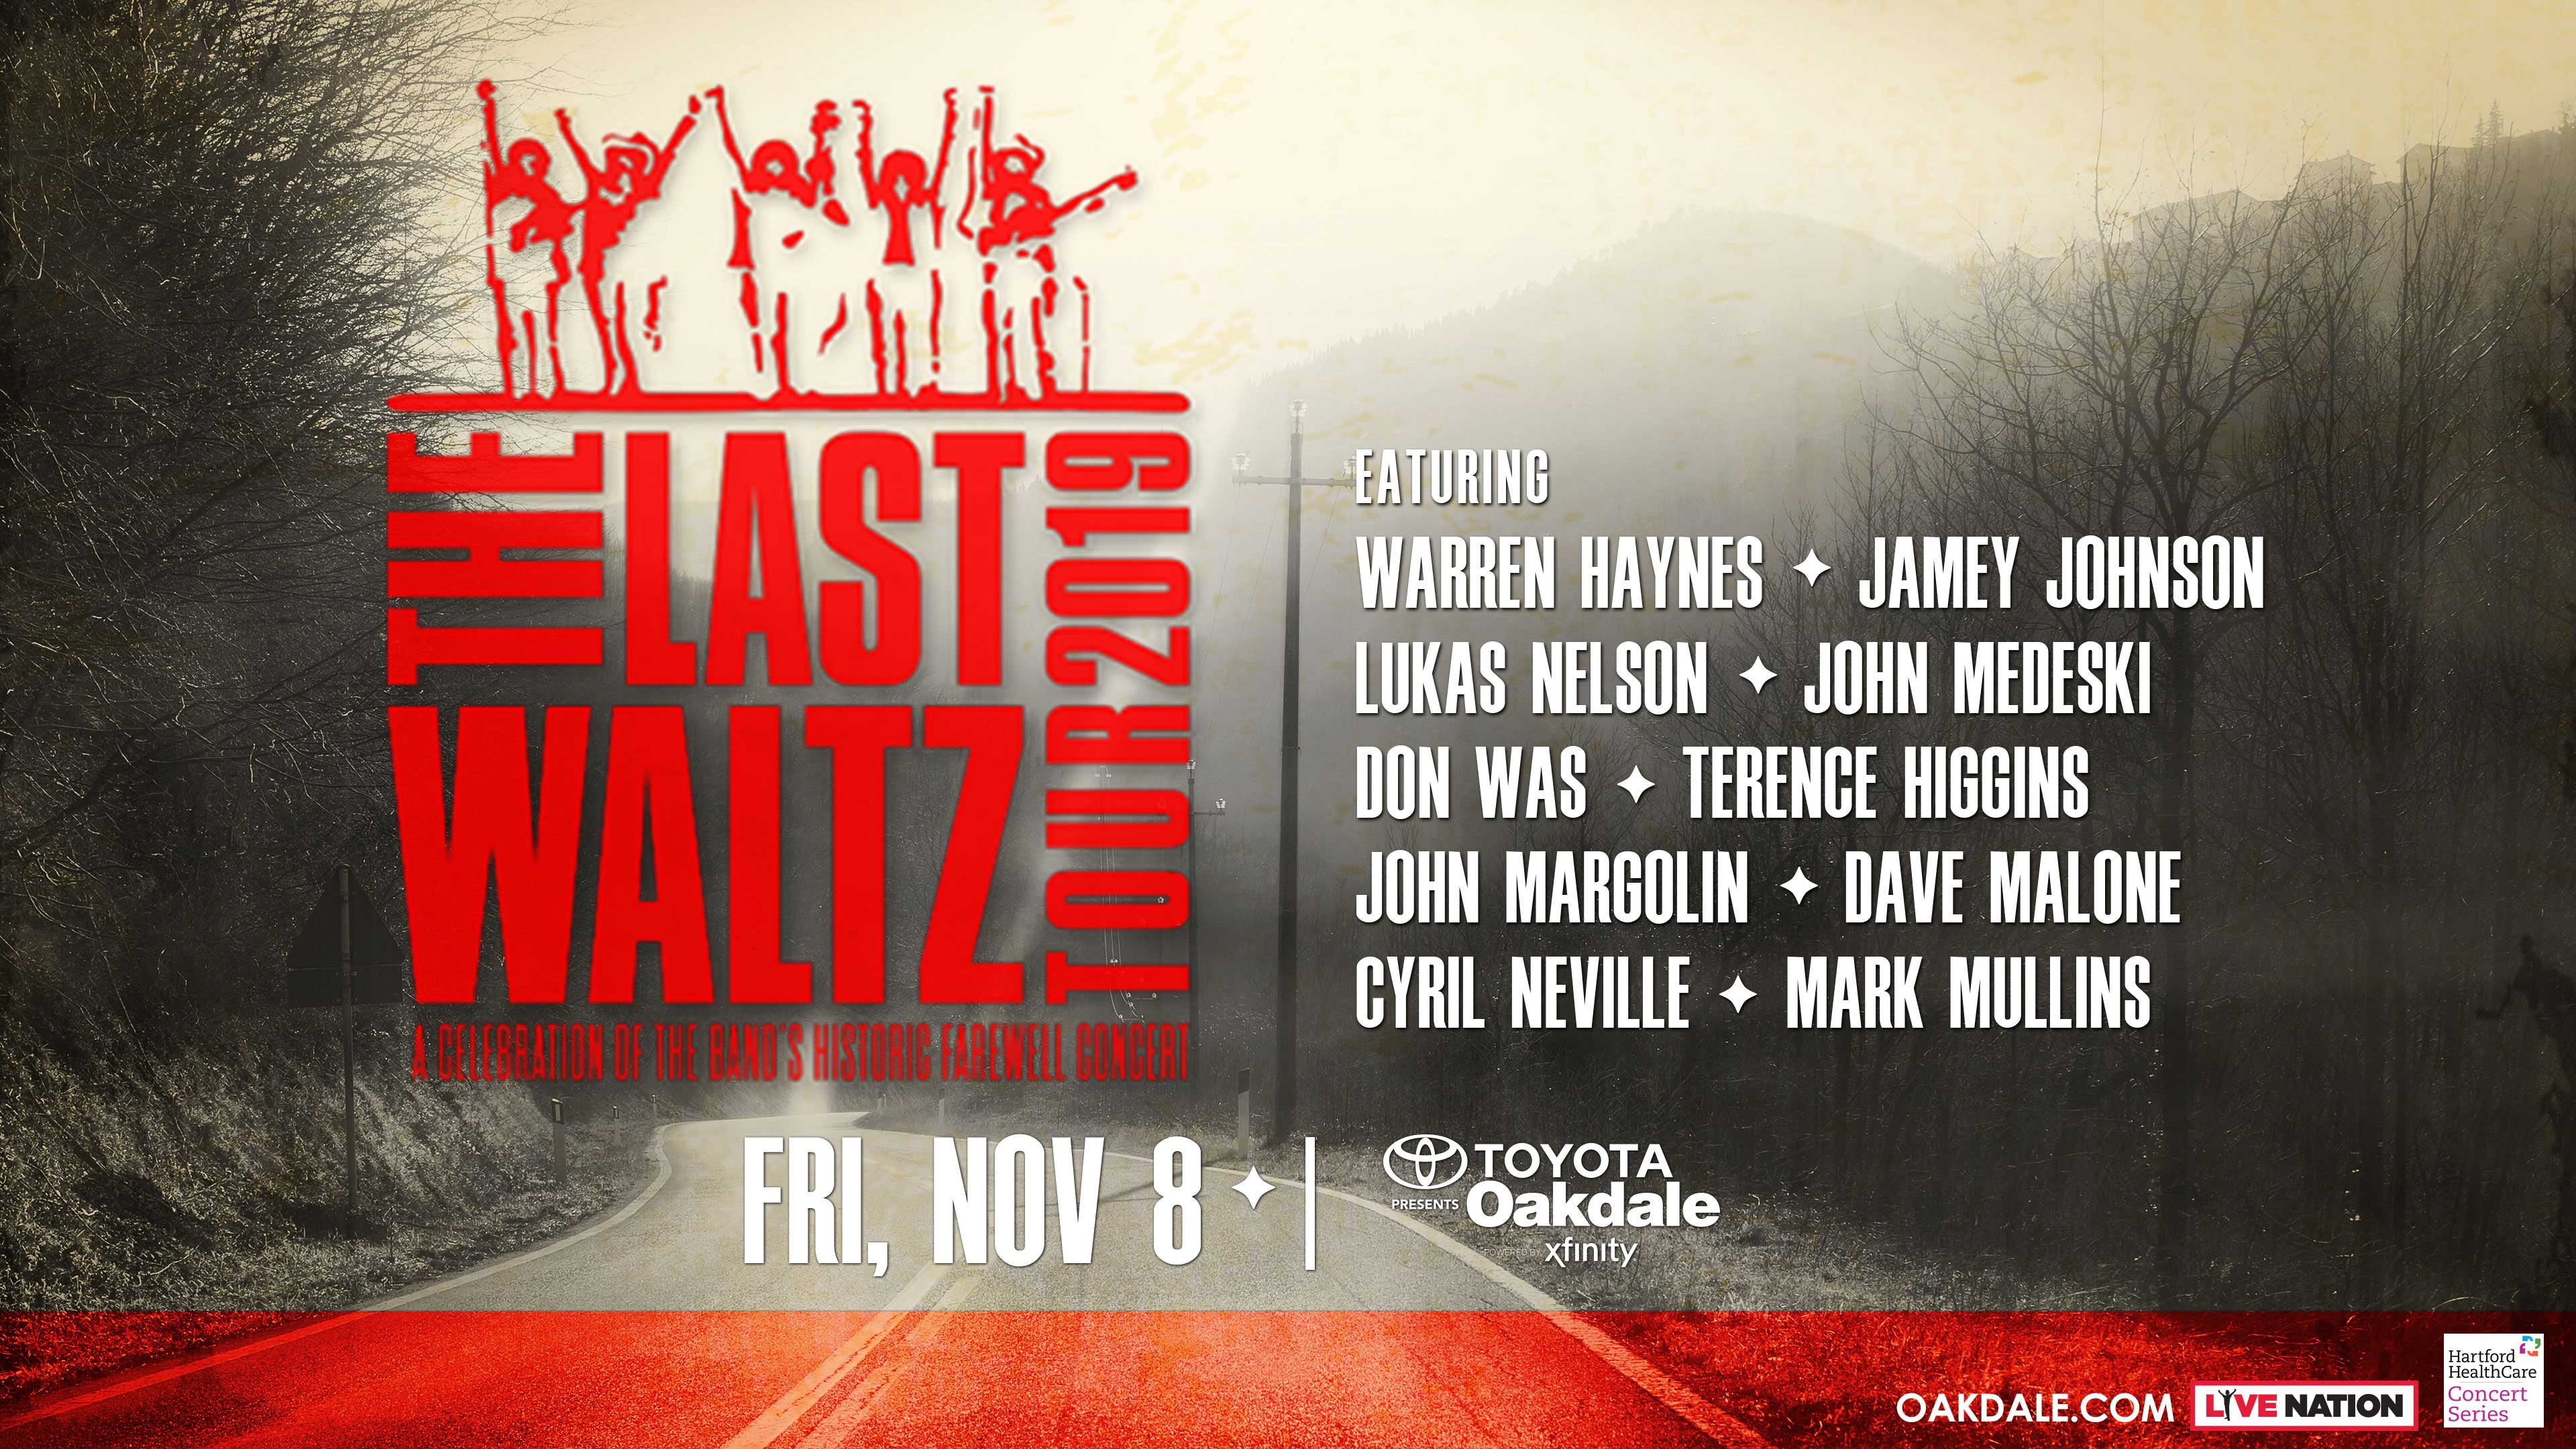 TheLastWaltzTourwithWarrenHaynes,JameyJohnson&more-mobile